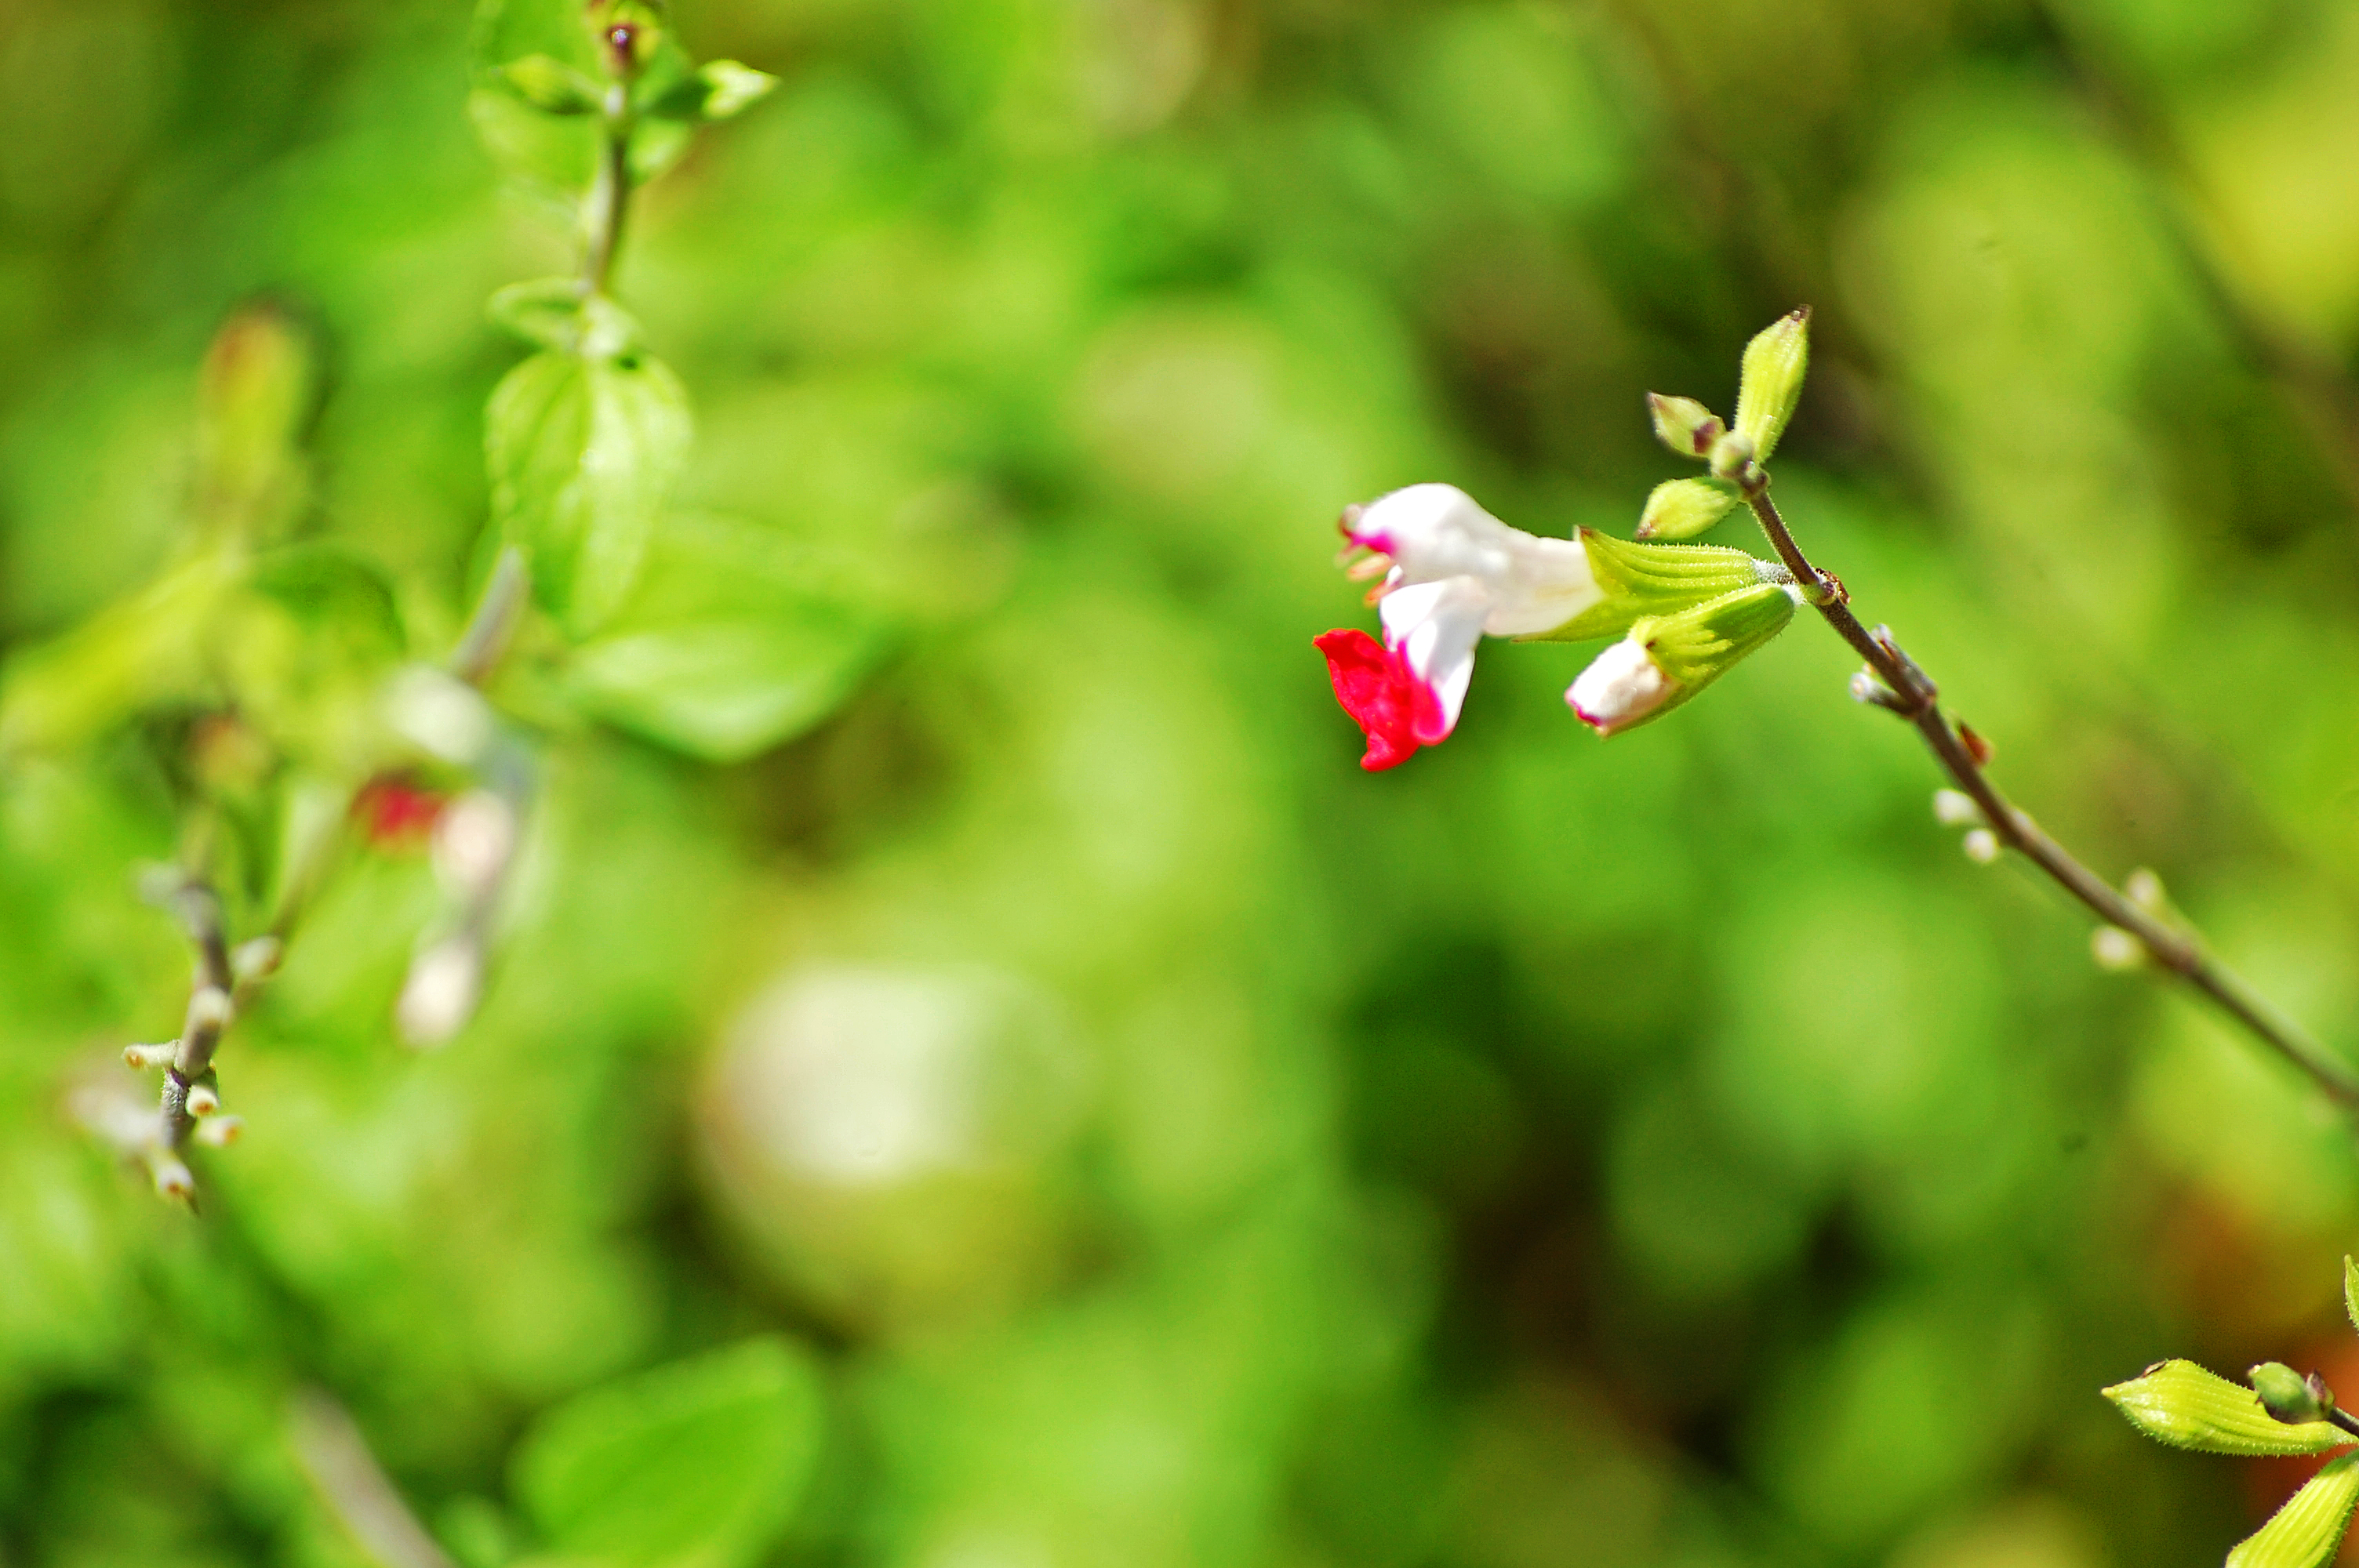 White and Pink Flower.jpg